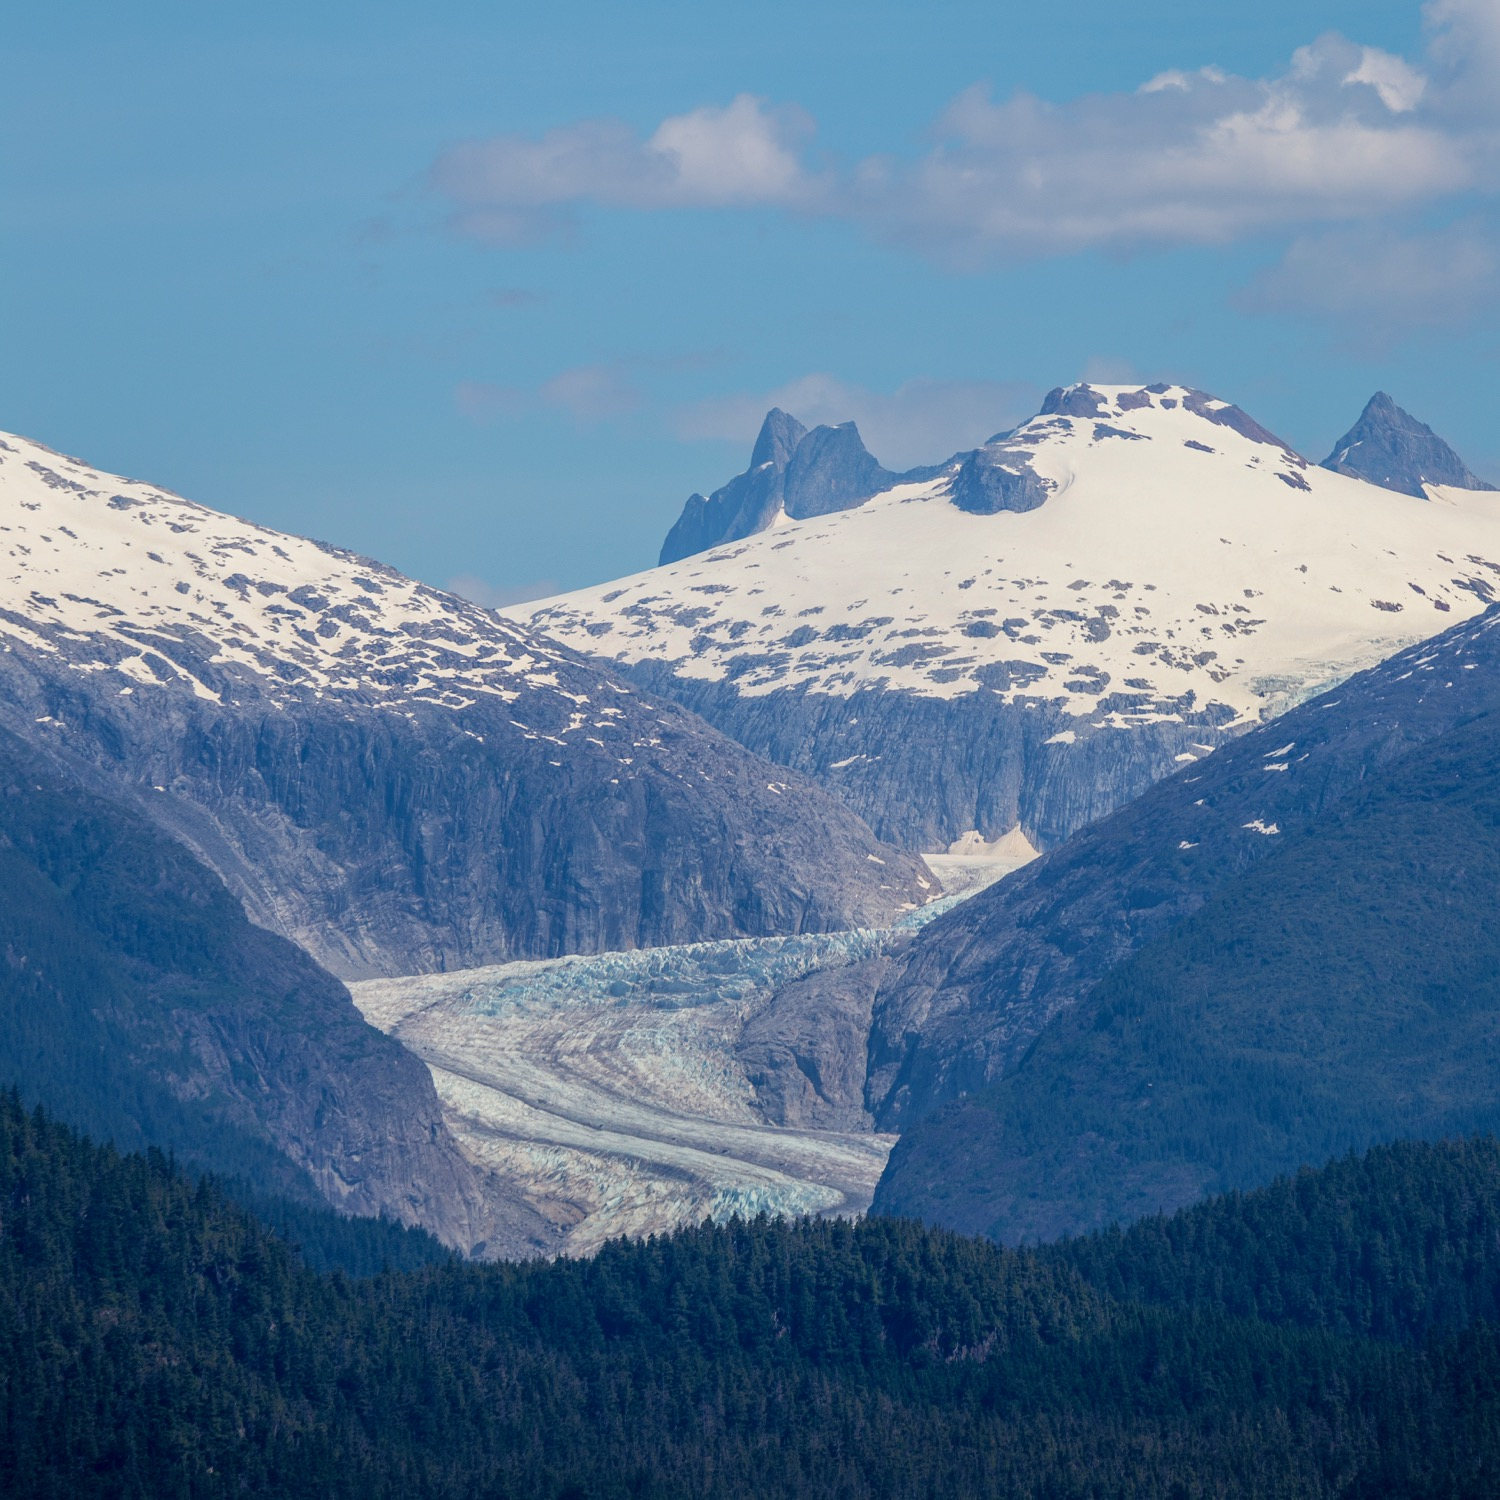 I don't remember the names of the various glaciers, but this was pretty typical of the scenery.